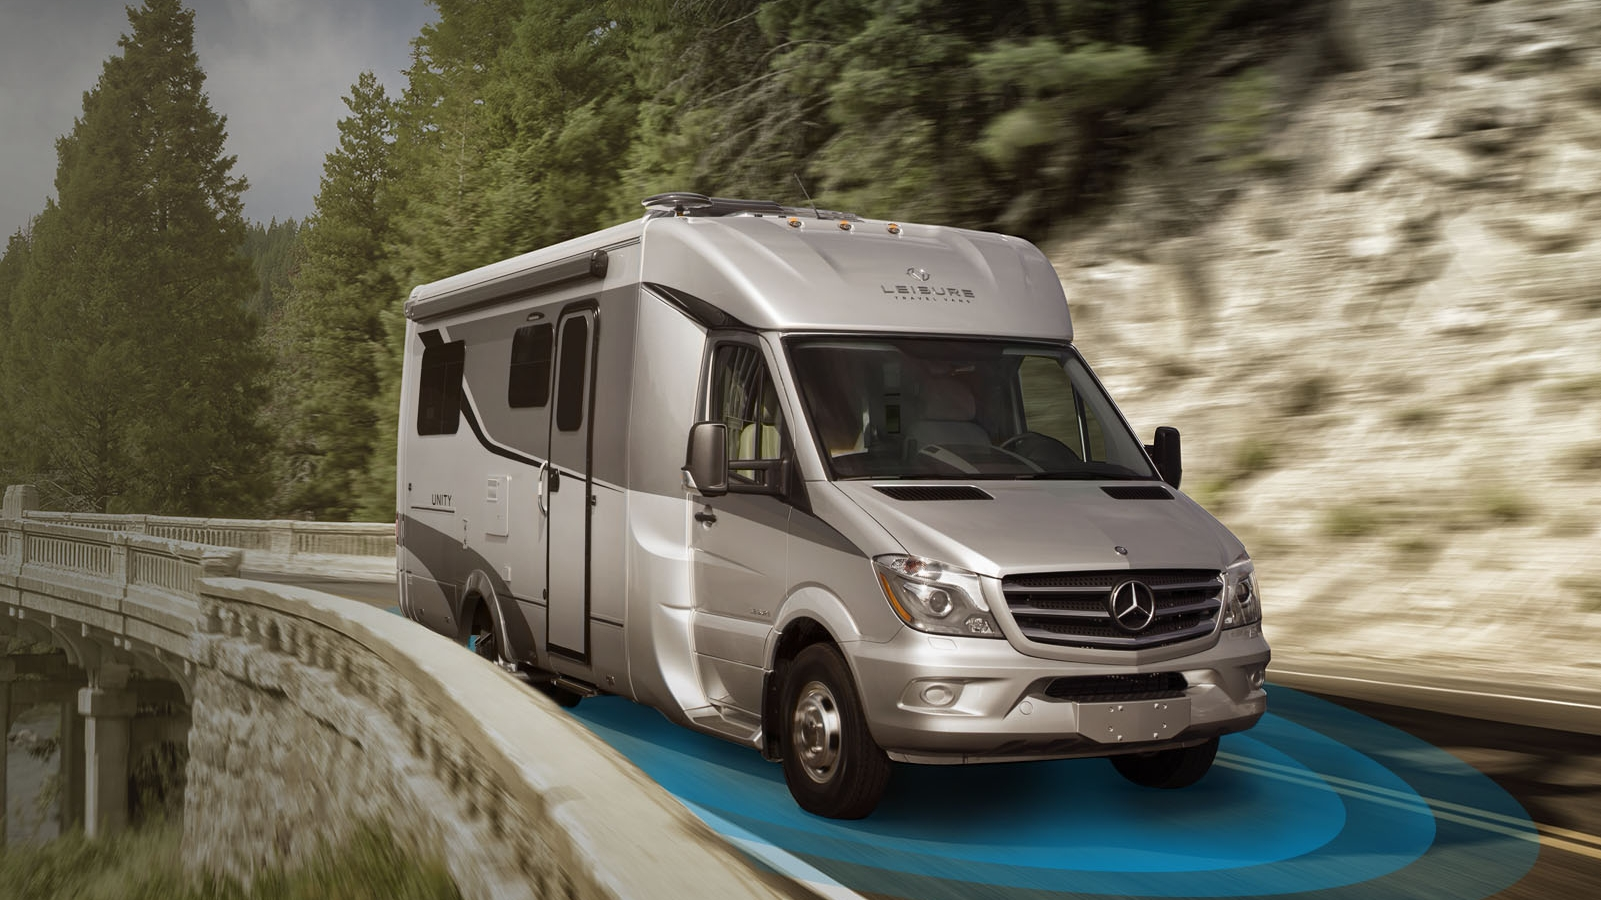 Designing And Building An Recreational Vehicle